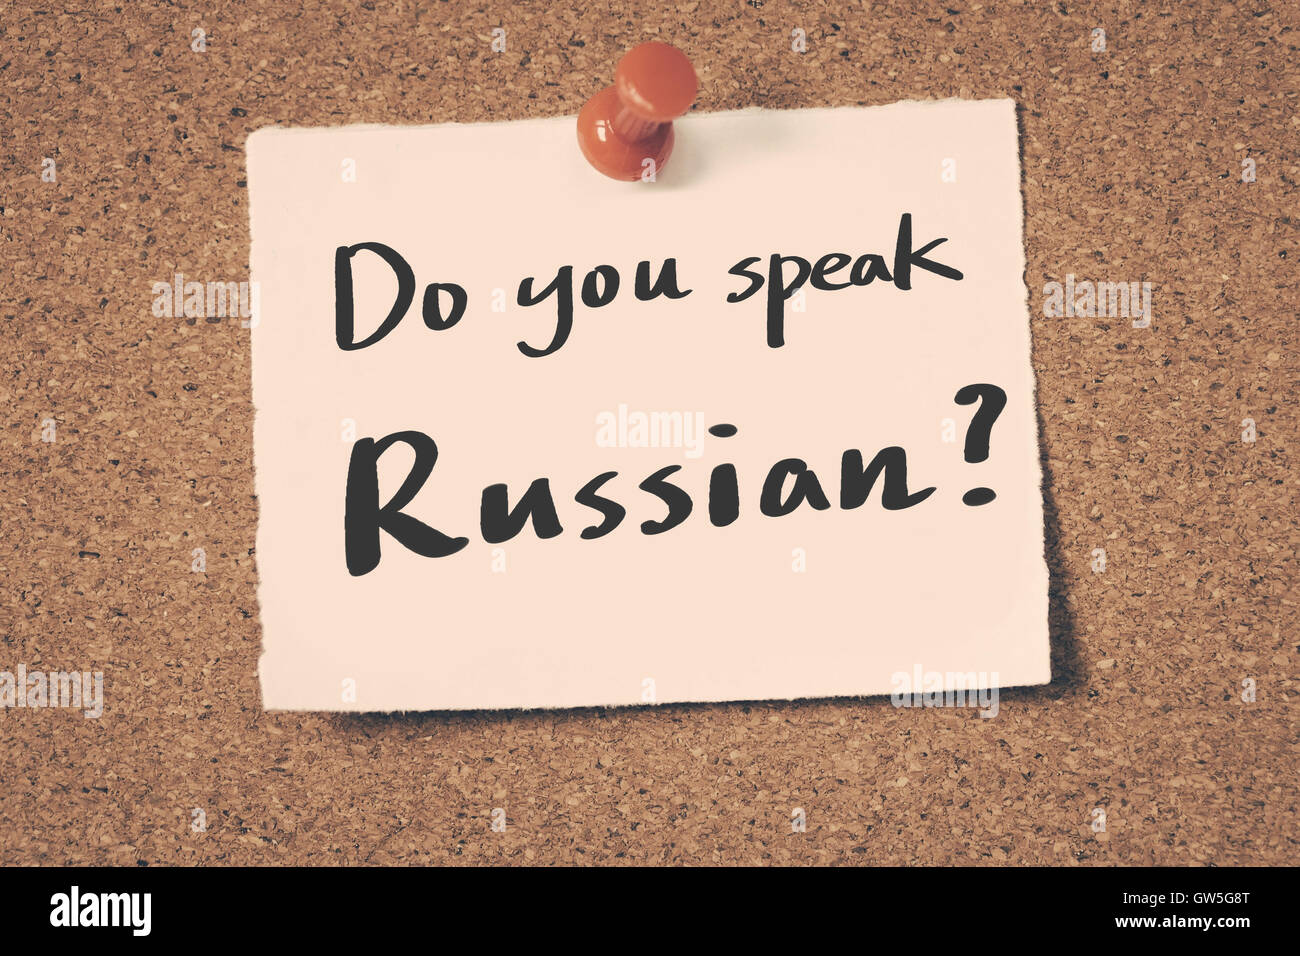 Do you speak Russian? - Stock Image